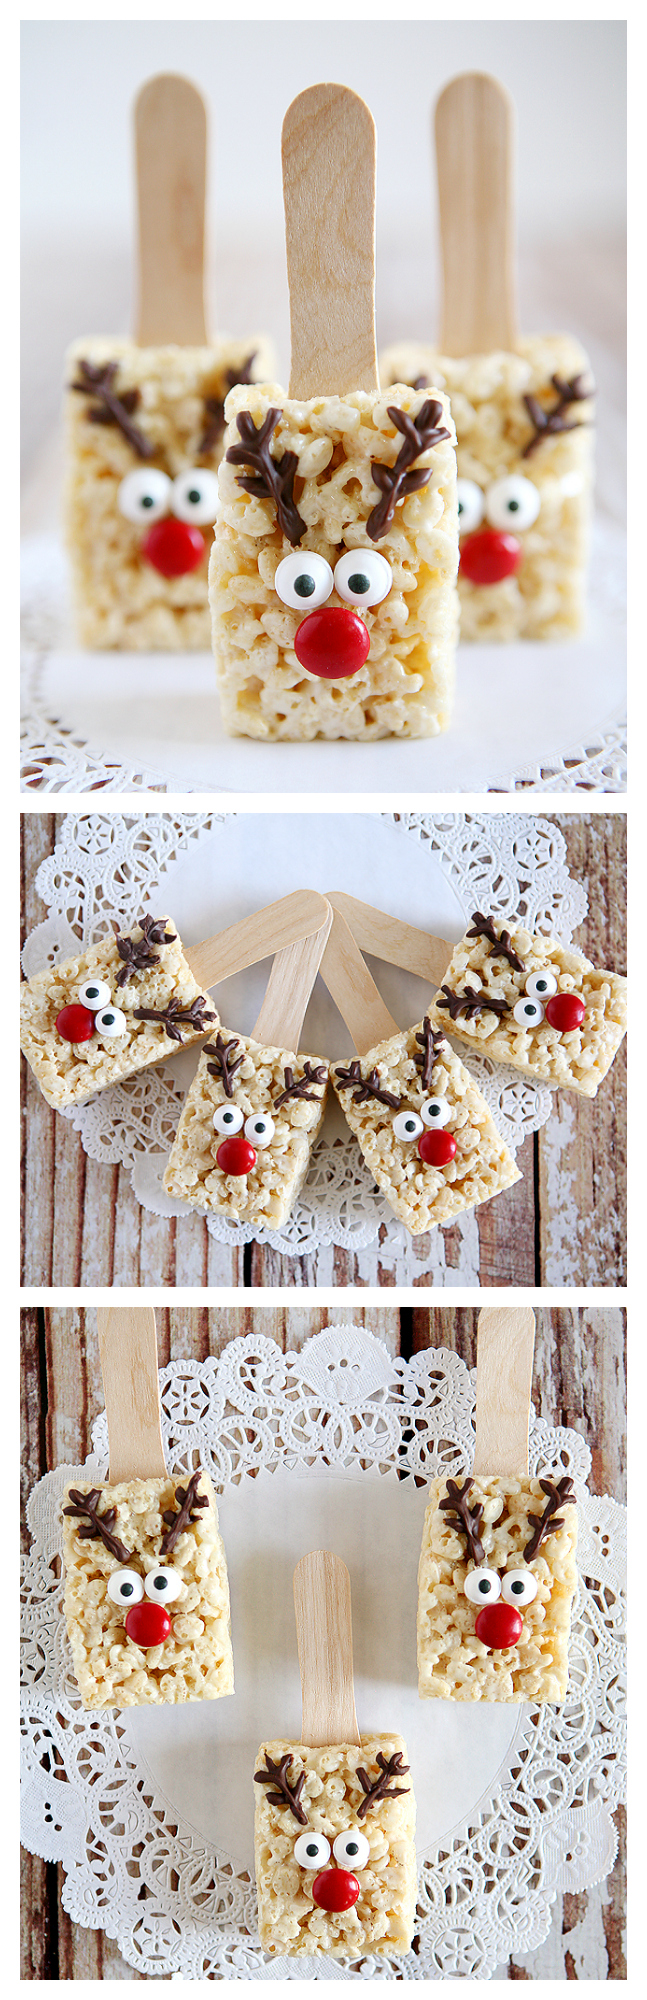 Reindeer Rice Krispies Treats - Eighteen25